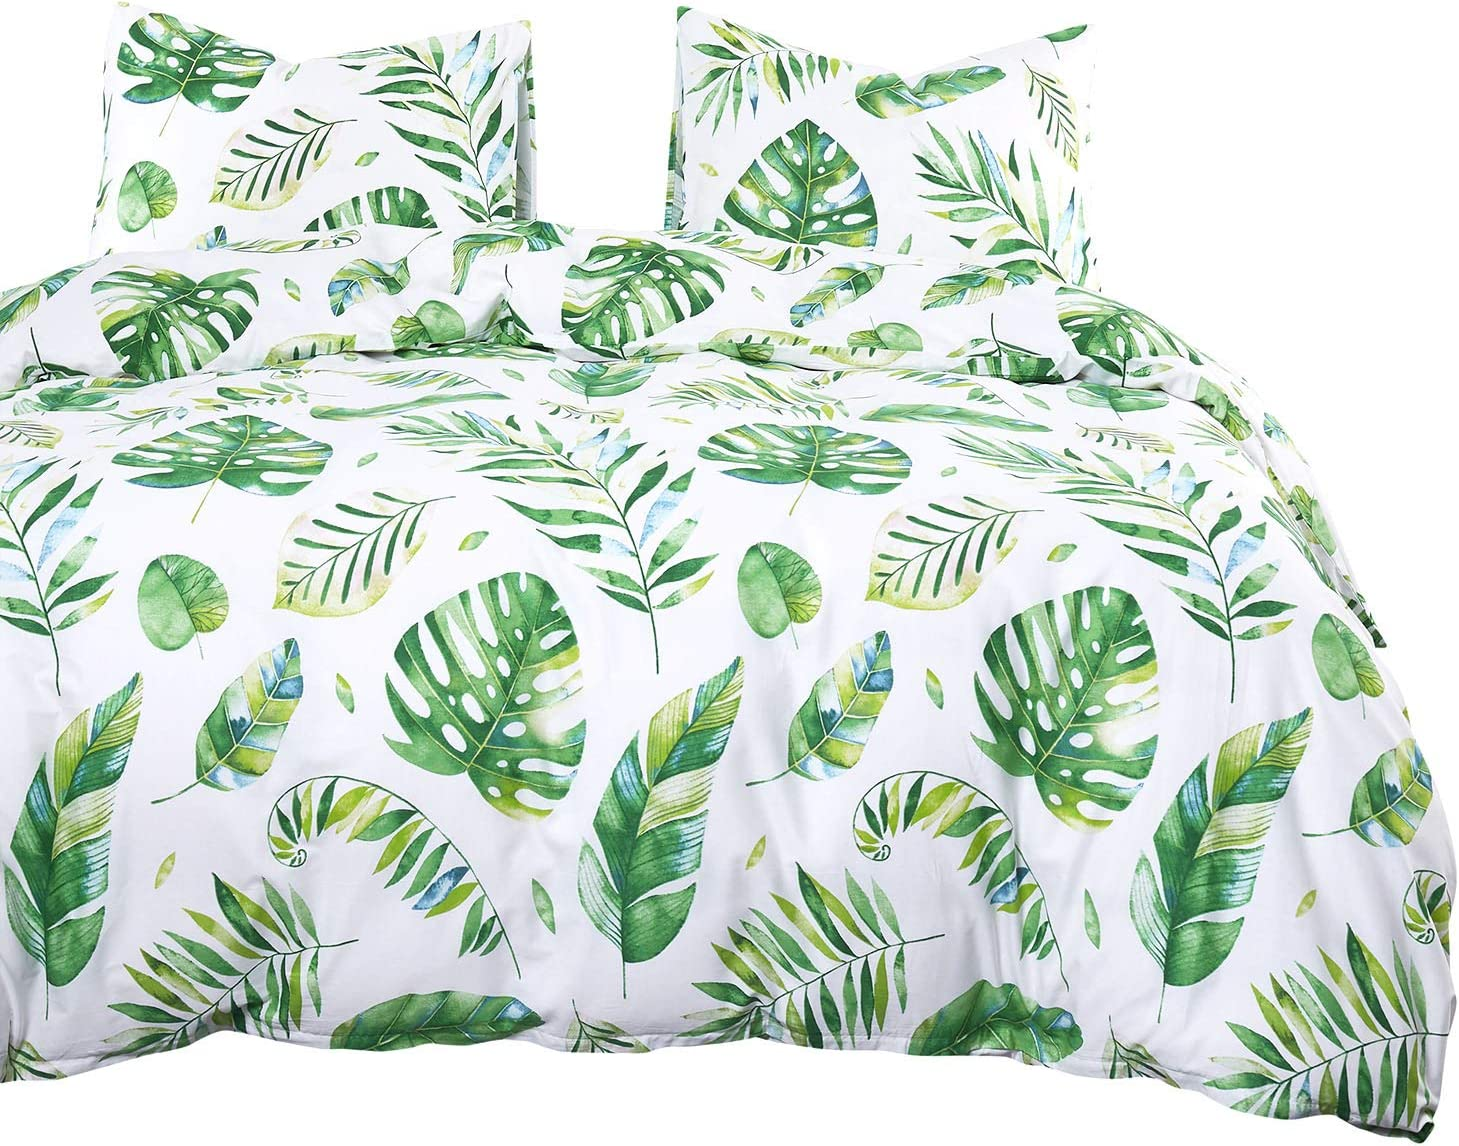 Wake In Cloud - Tree Leaves Comforter Set, 100% Cotton Fabric with Soft Microfiber Fill Bedding, Green Monstera Plant Banana Leaves Pattern Printed on White (3pcs, Queen Size)